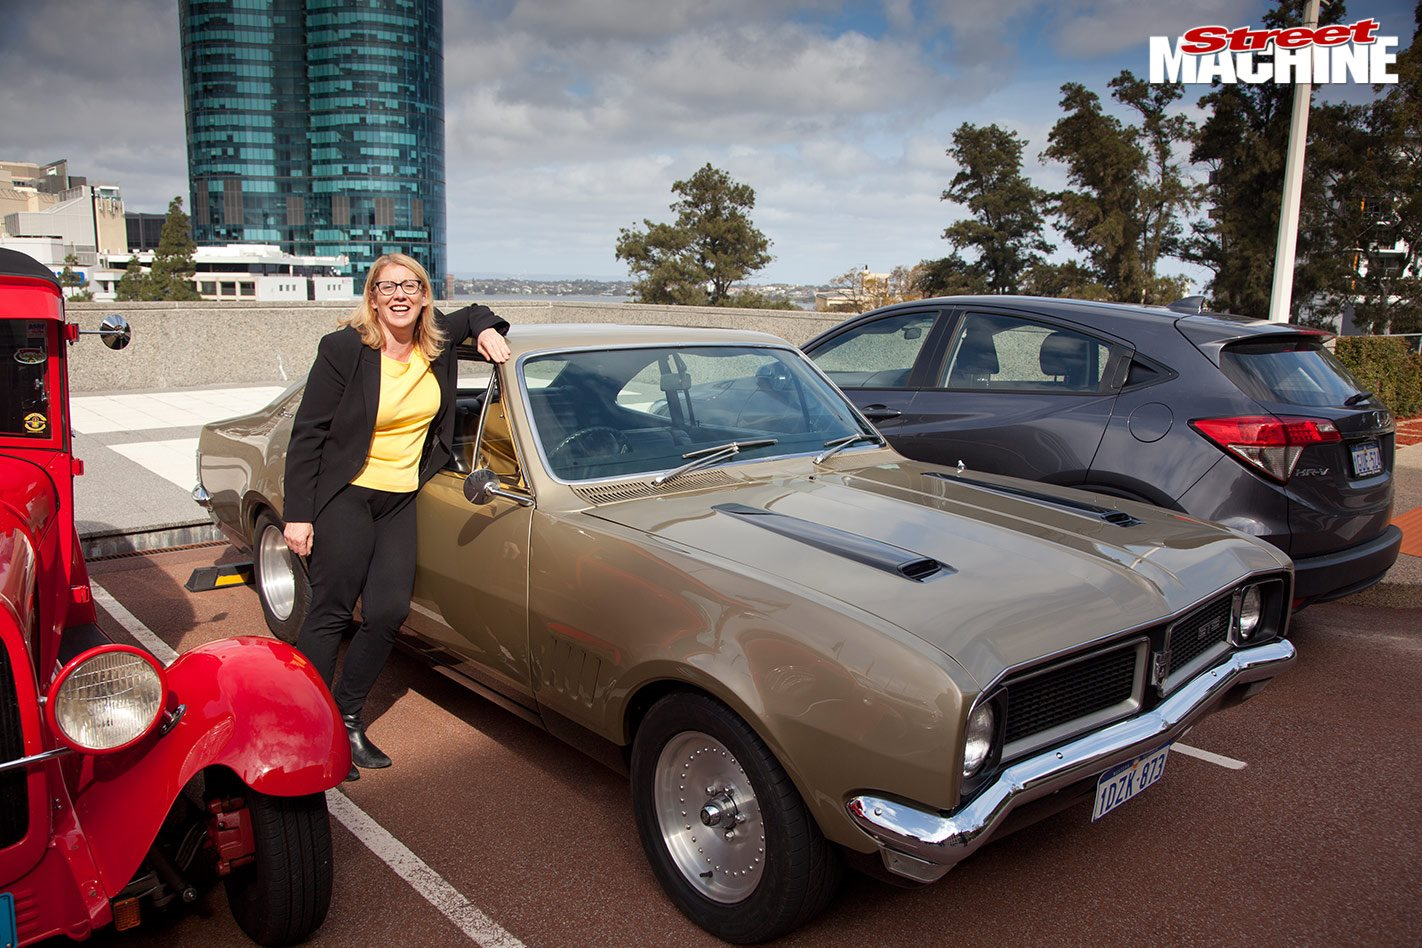 Wa Transport Minister Announces That The Concessions For Classics Scheme Will Kick Off In Early 2021